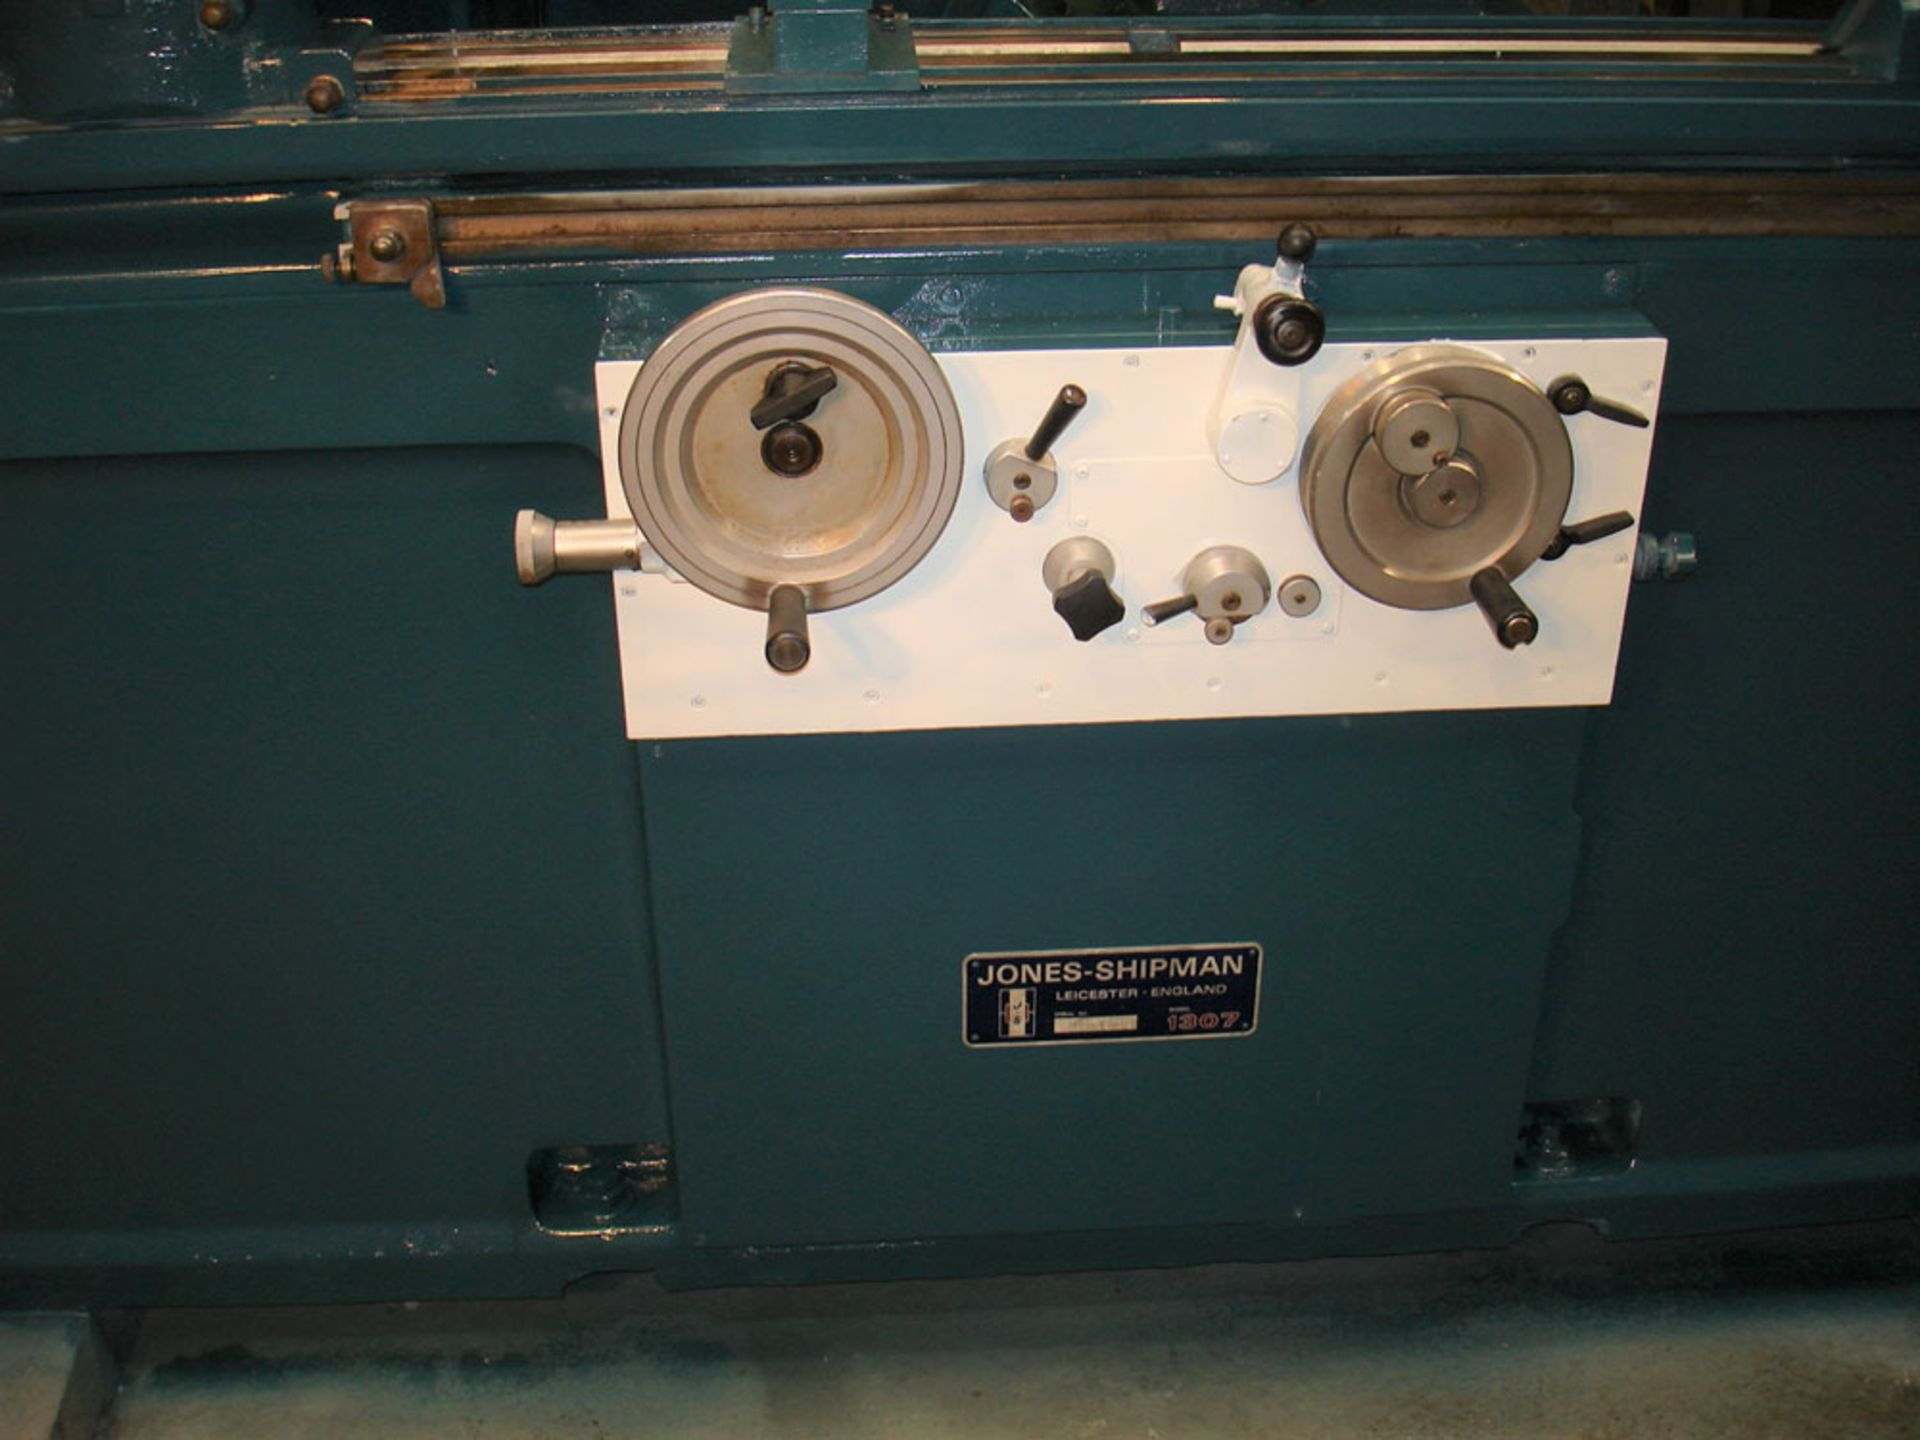 Jones & Shipman 1307 Universal Cylindrical Grinder. Swing 356 x 1016mm Between Centres. - Image 3 of 7